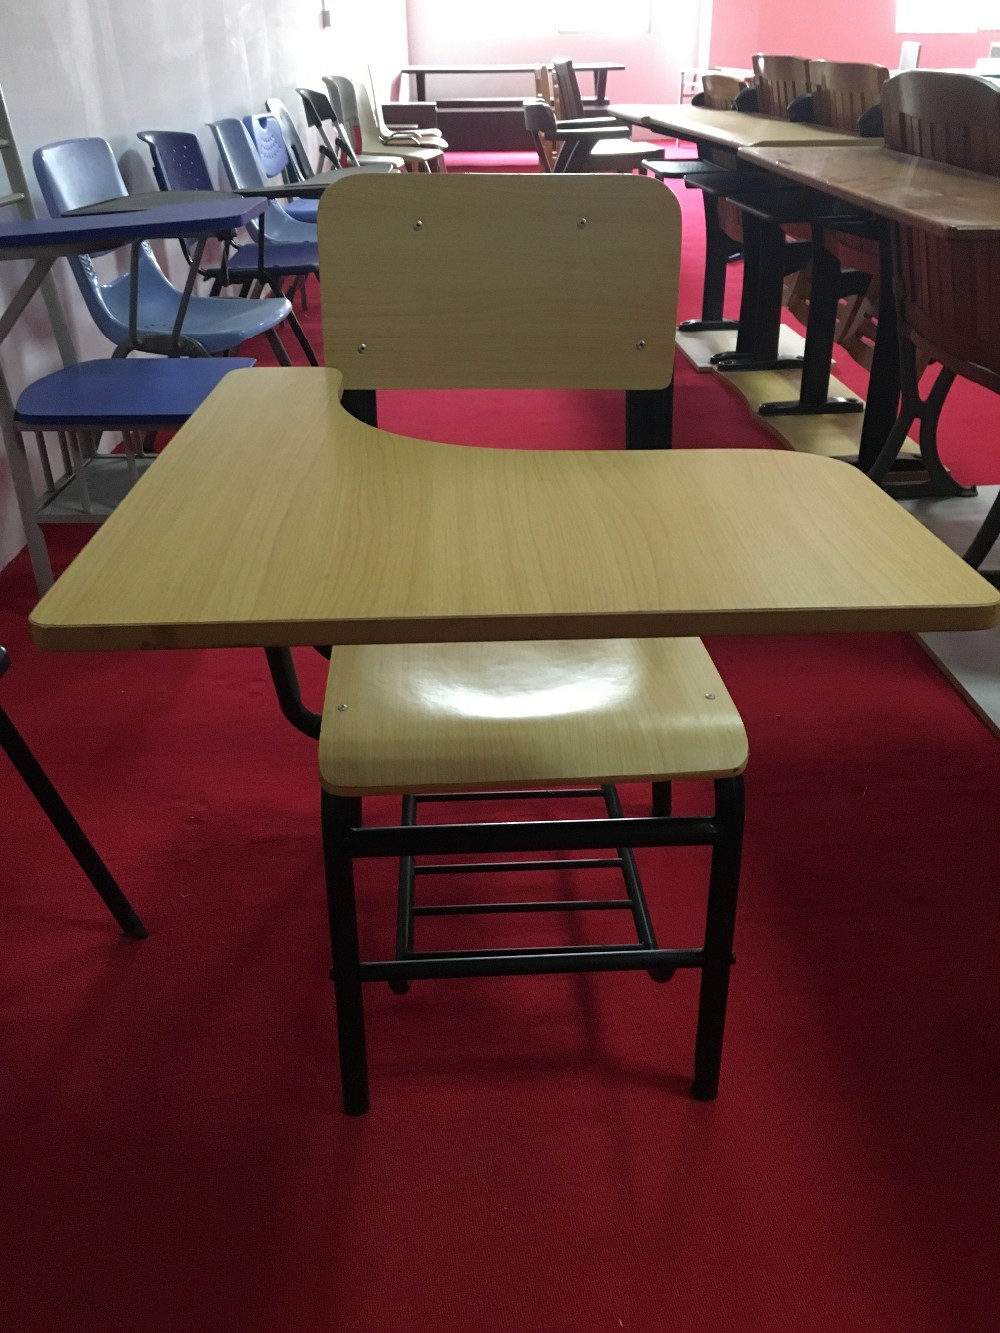 For sale!!School classroom folding tablet chair school chair with writing pad and writing board